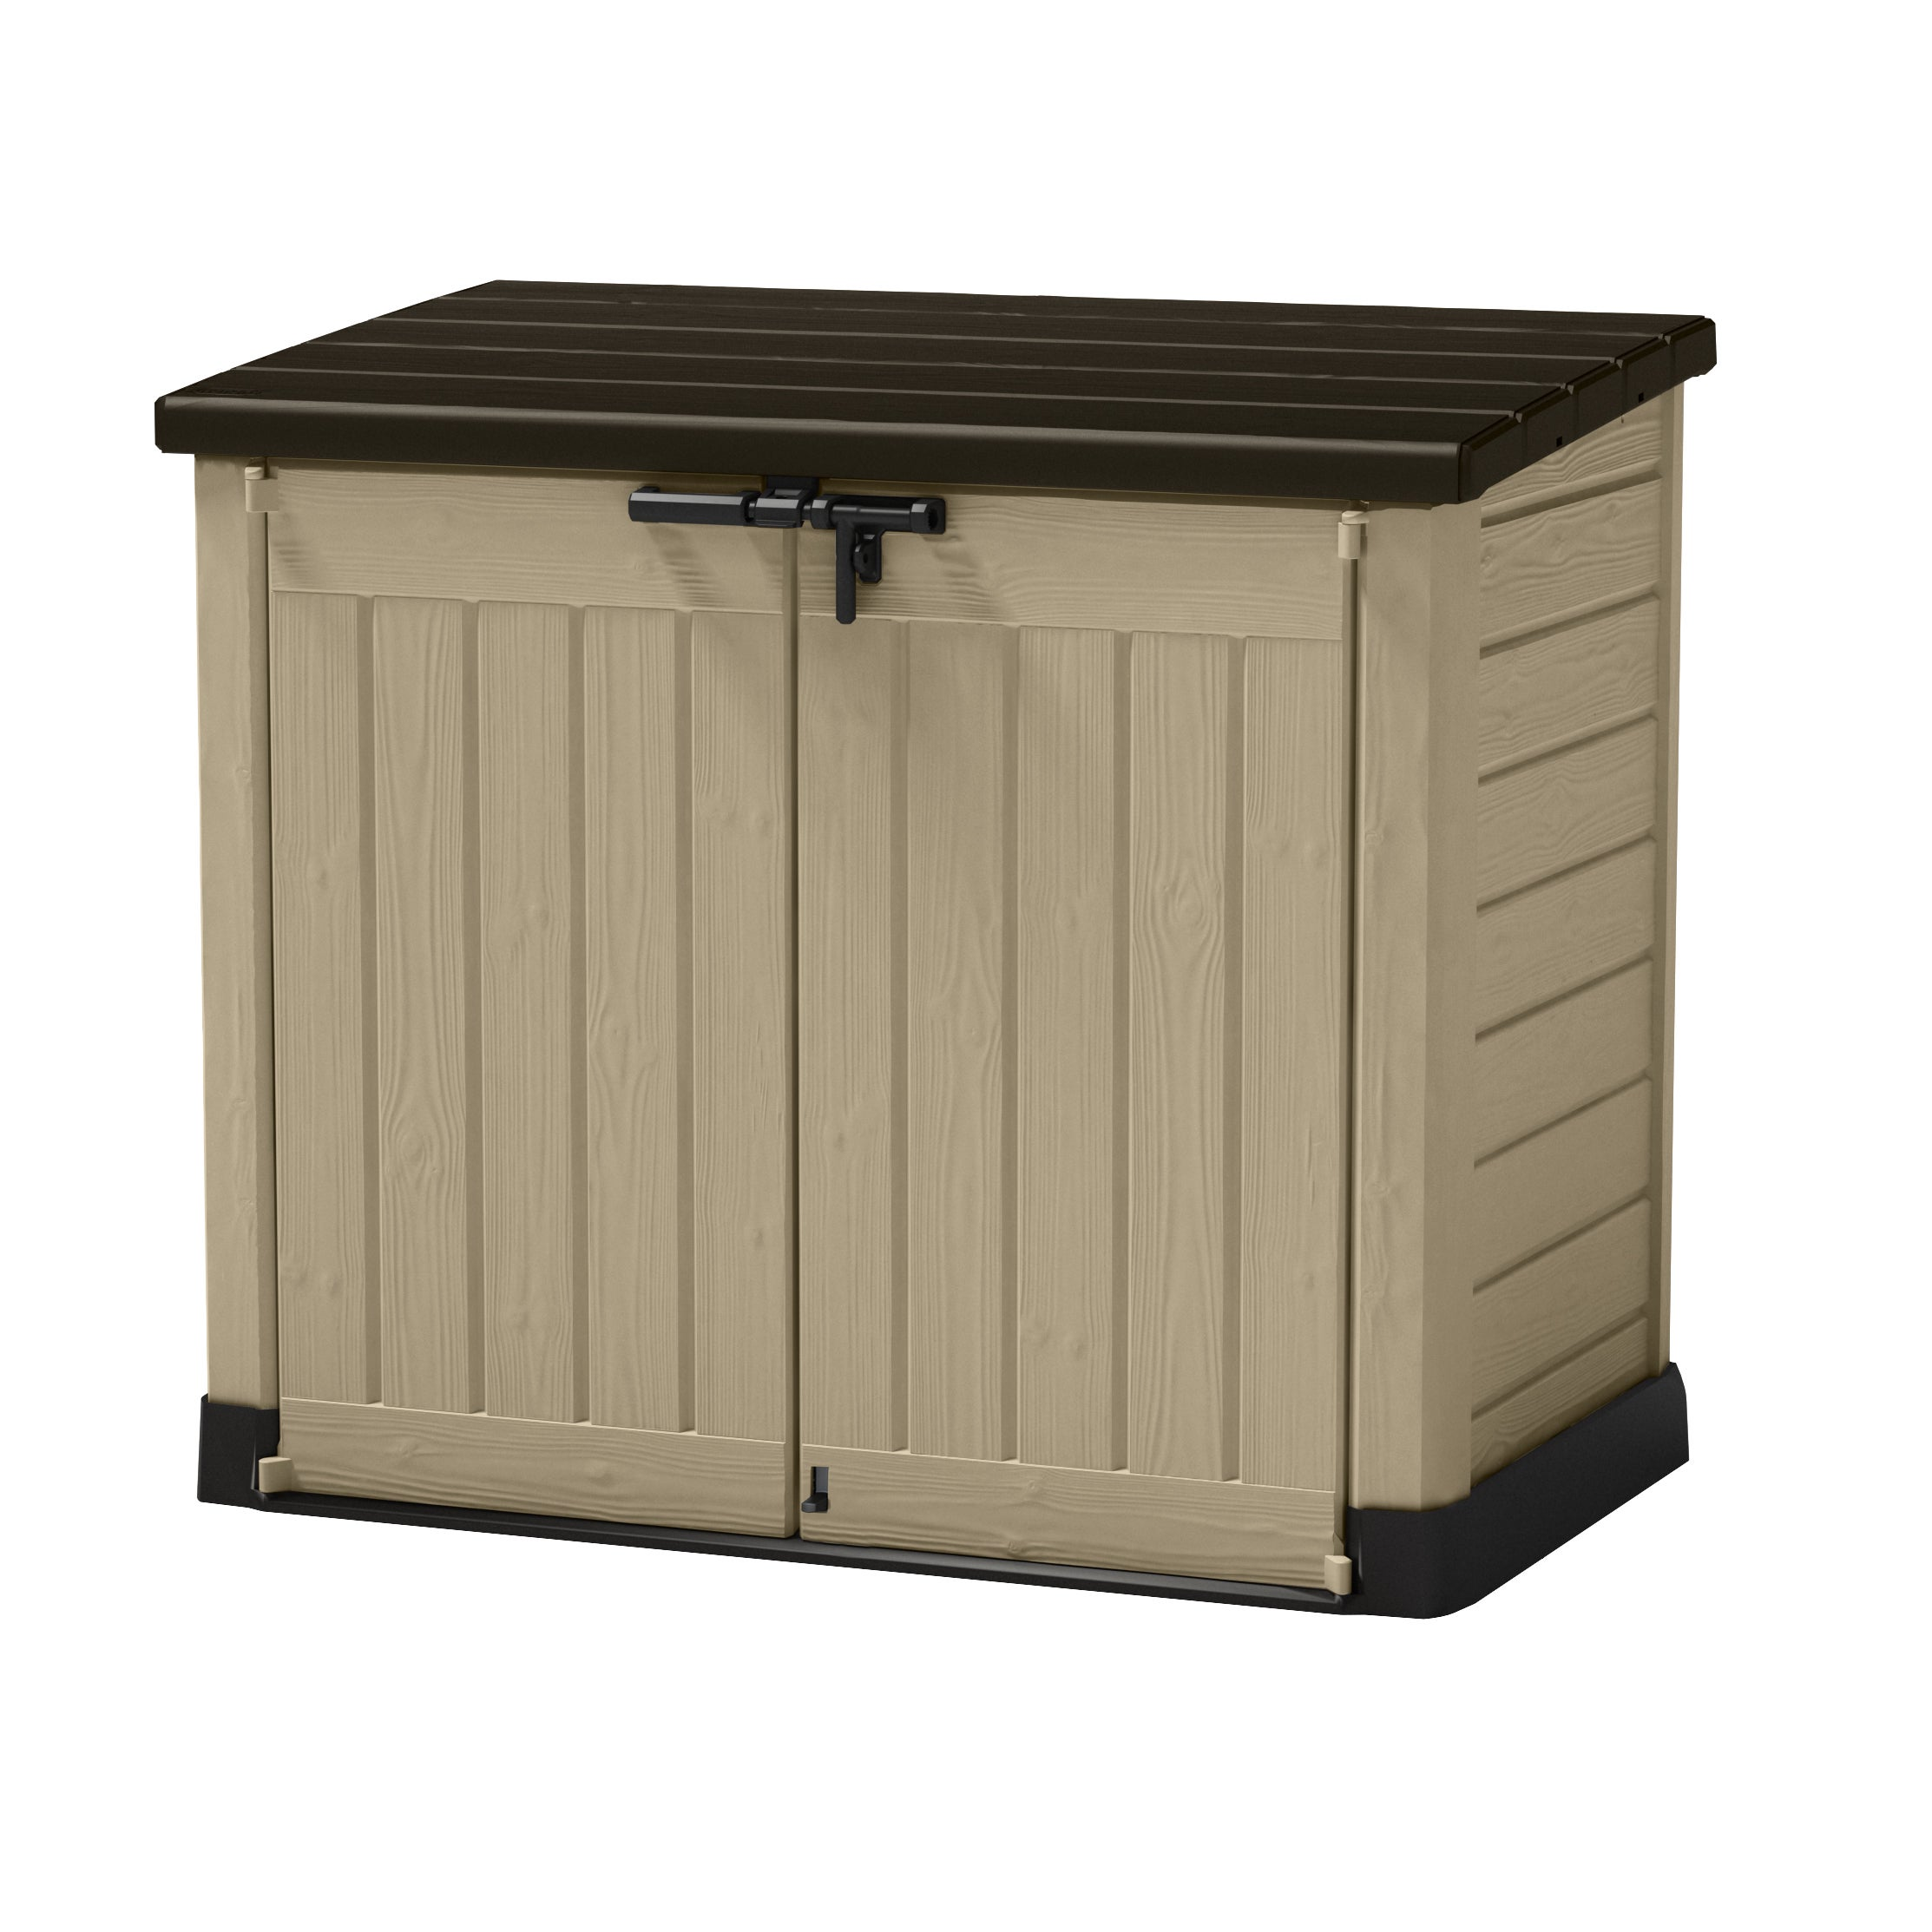 imageid profileid x bjs storage sheds shed club suncast undefined product imageservice recipeid wholesale